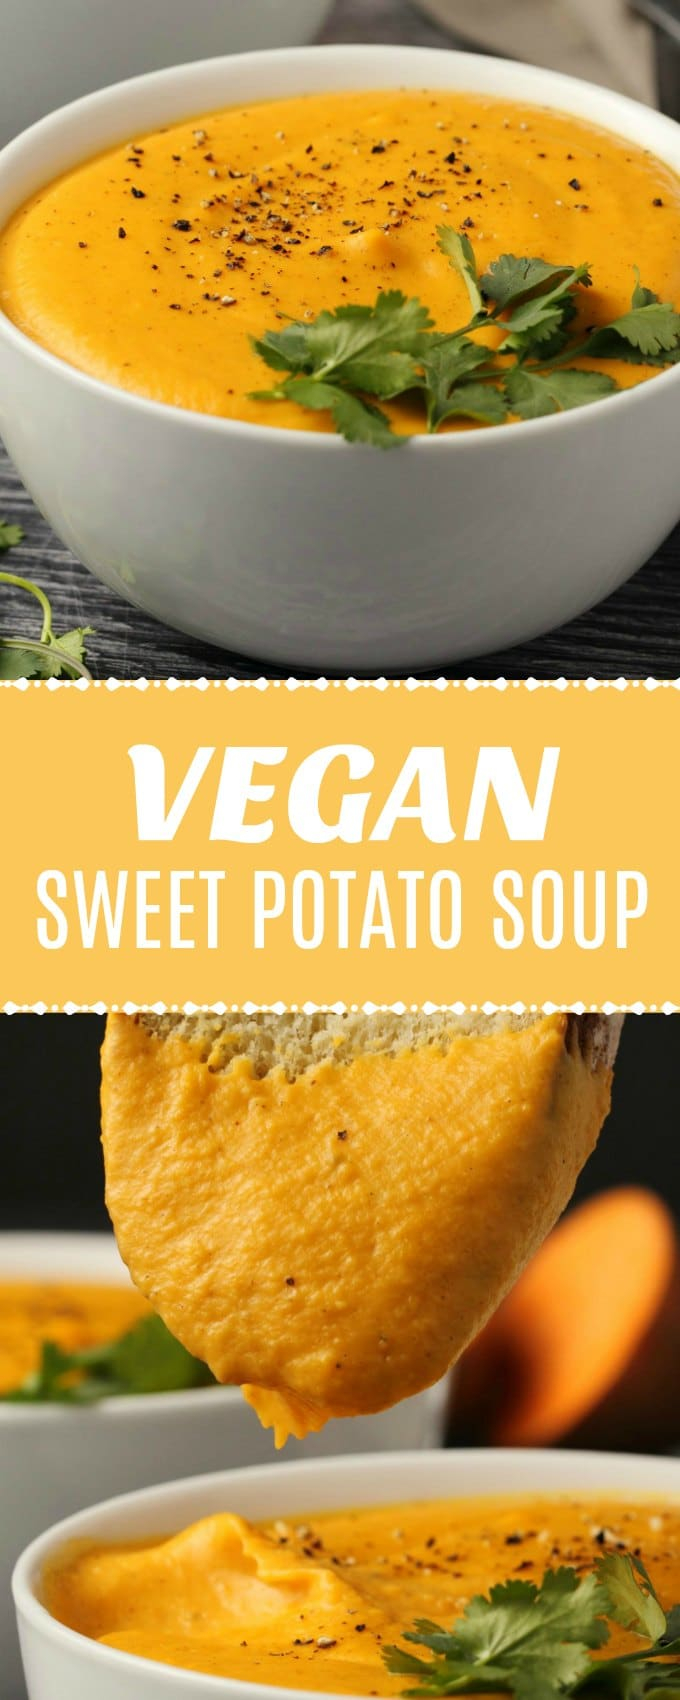 Rich and fabulously creamy vegan sweet potato soup. Hearty and filling, this super easy vegan soup makes wonderful comfort food!  | lovingitvegan.com